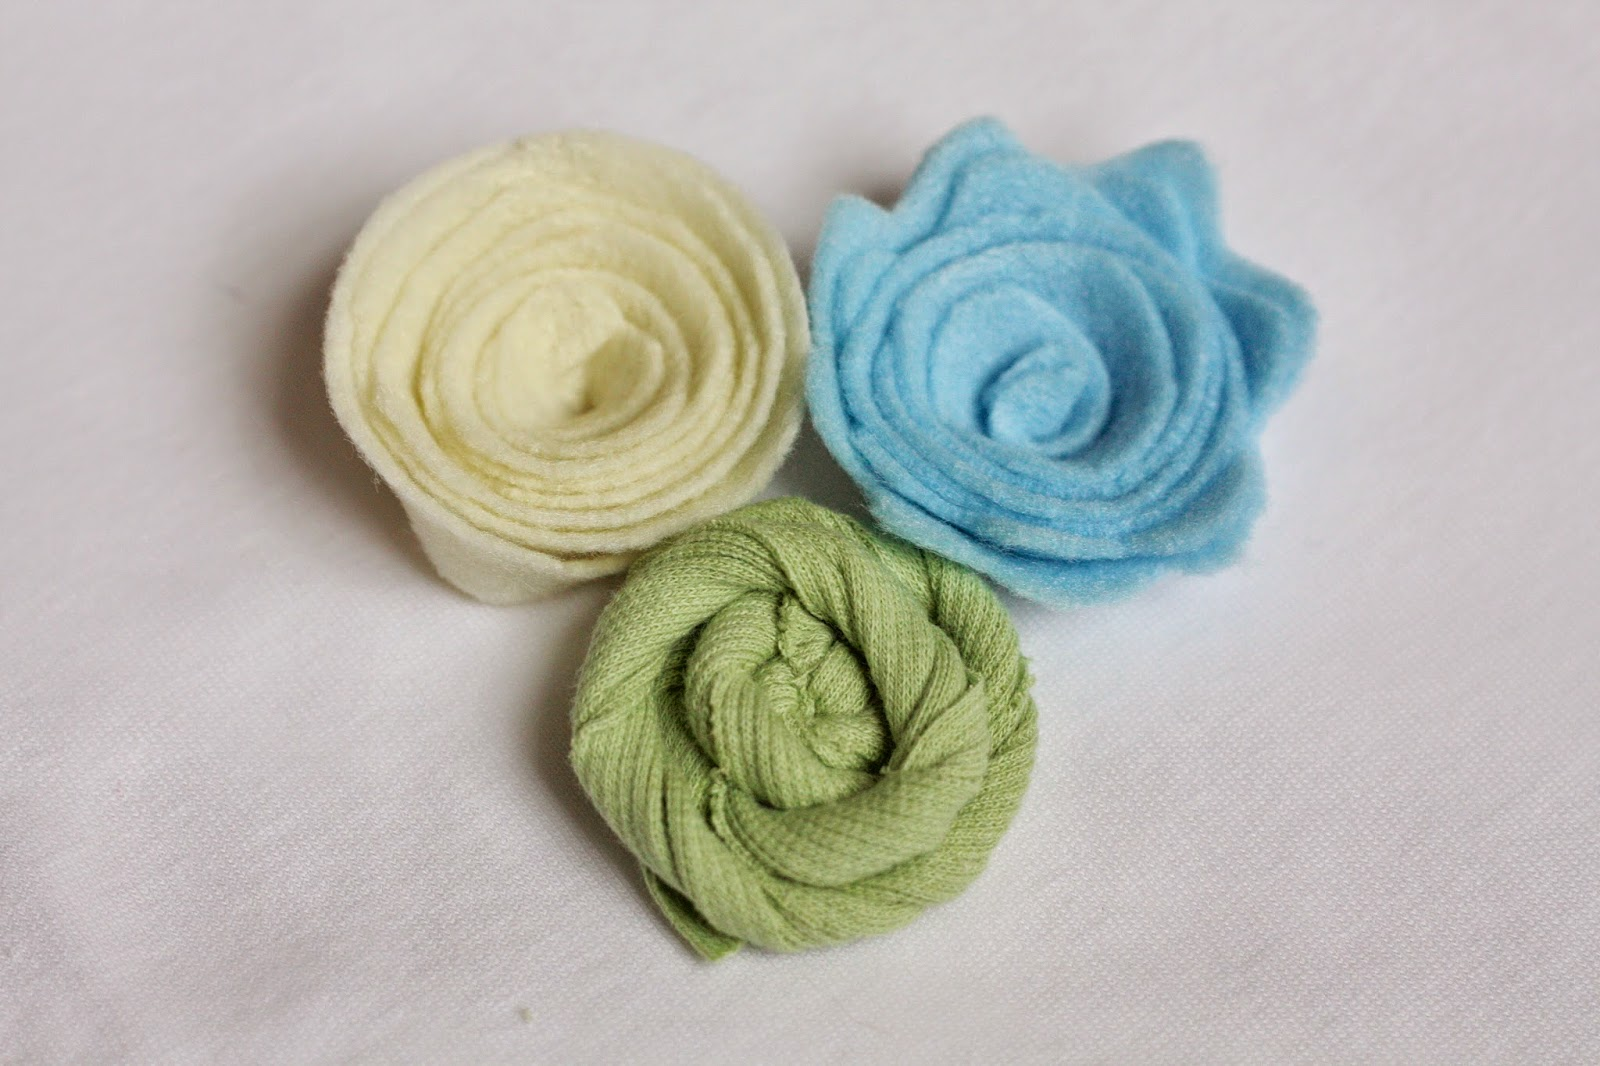 Magnolia mamas diy felt fabric flowers tutorial the first flowers i made were using felt and i made two different styles baditri Gallery